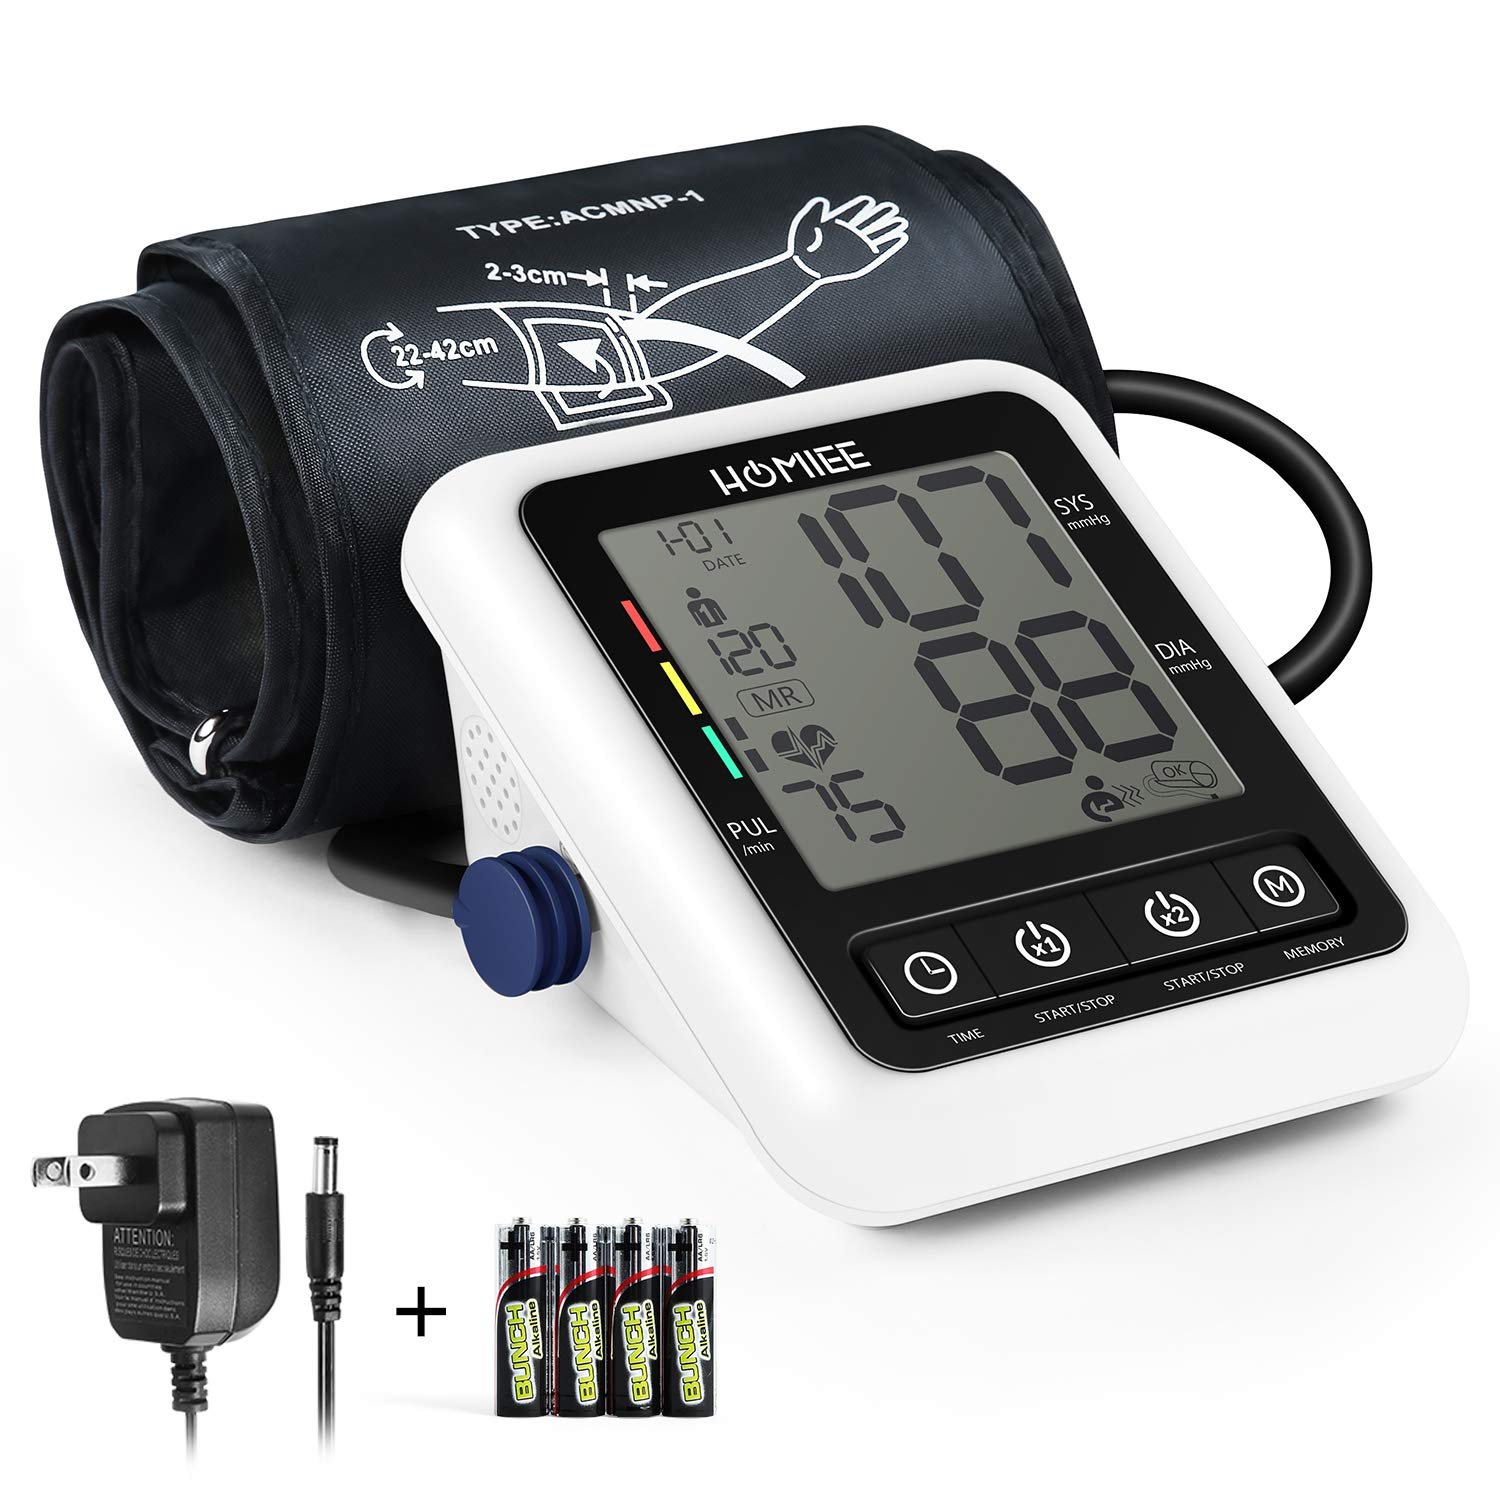 Blood Pressure Machine with AC Adapter, HOMIEE Blood Pressure Monitor with AFIB Detection, 2 Users 240 Memories, 2.4'' LCD Display & 22-42CM Large Arm Cuff, 4X AA Batteries Included, White